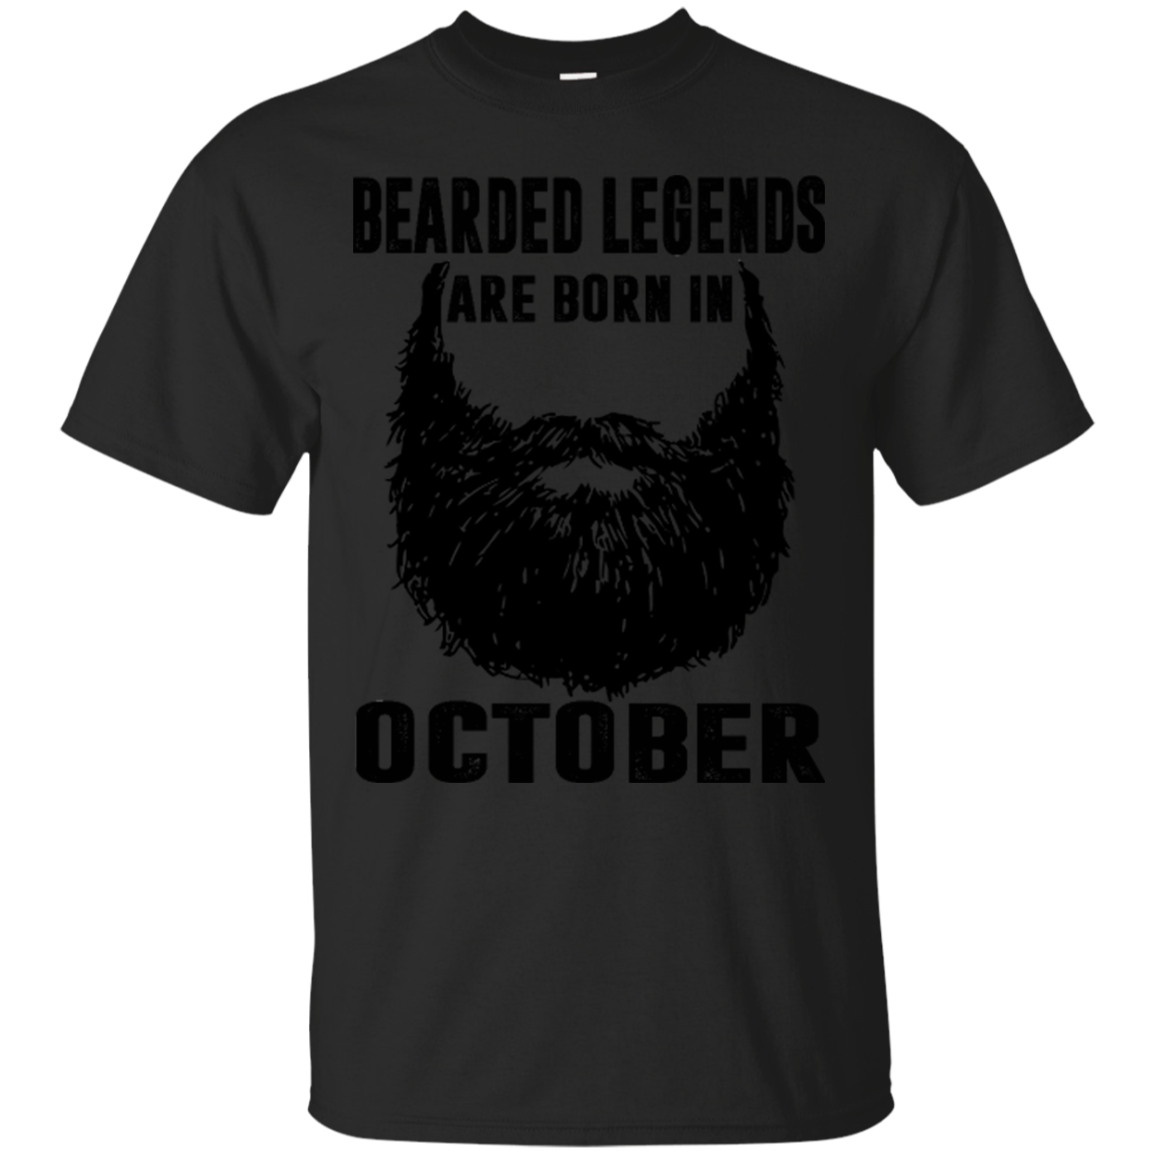 Beared Legends Are Born In October Beared Legends Shirts Hoodies Sweatshirts